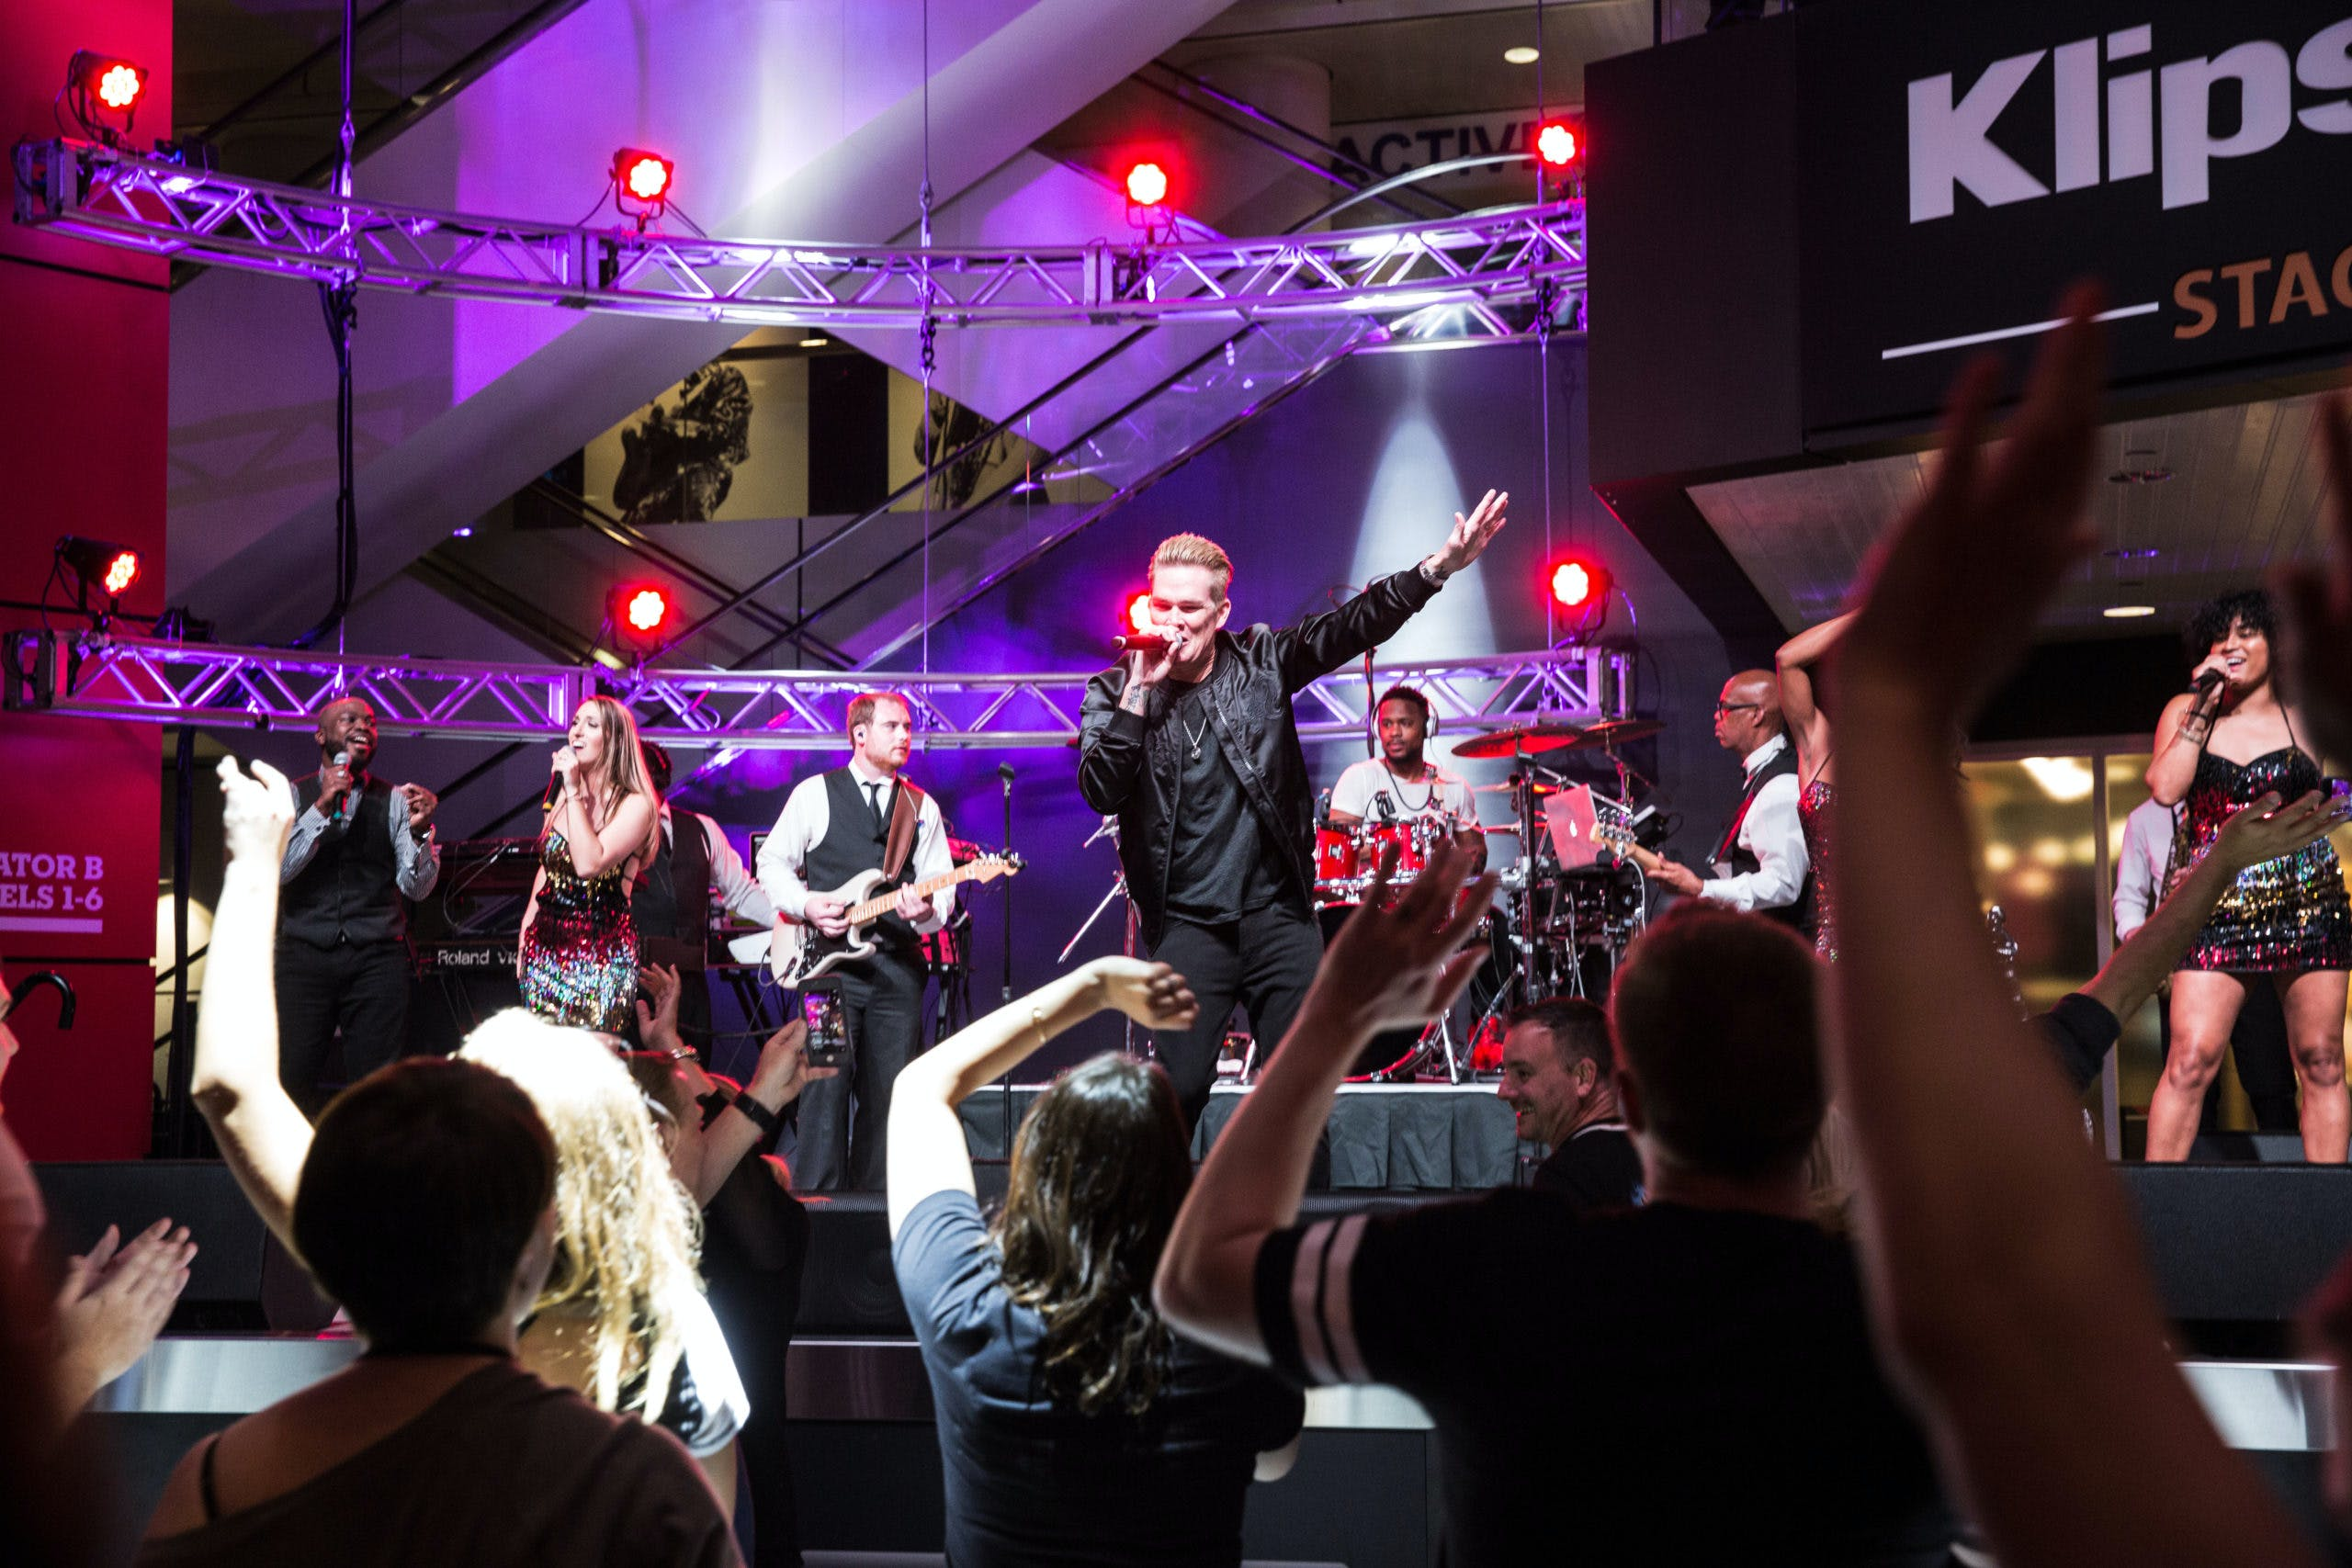 Multi-Day Corporate Event with rock band on stage   PartySlate